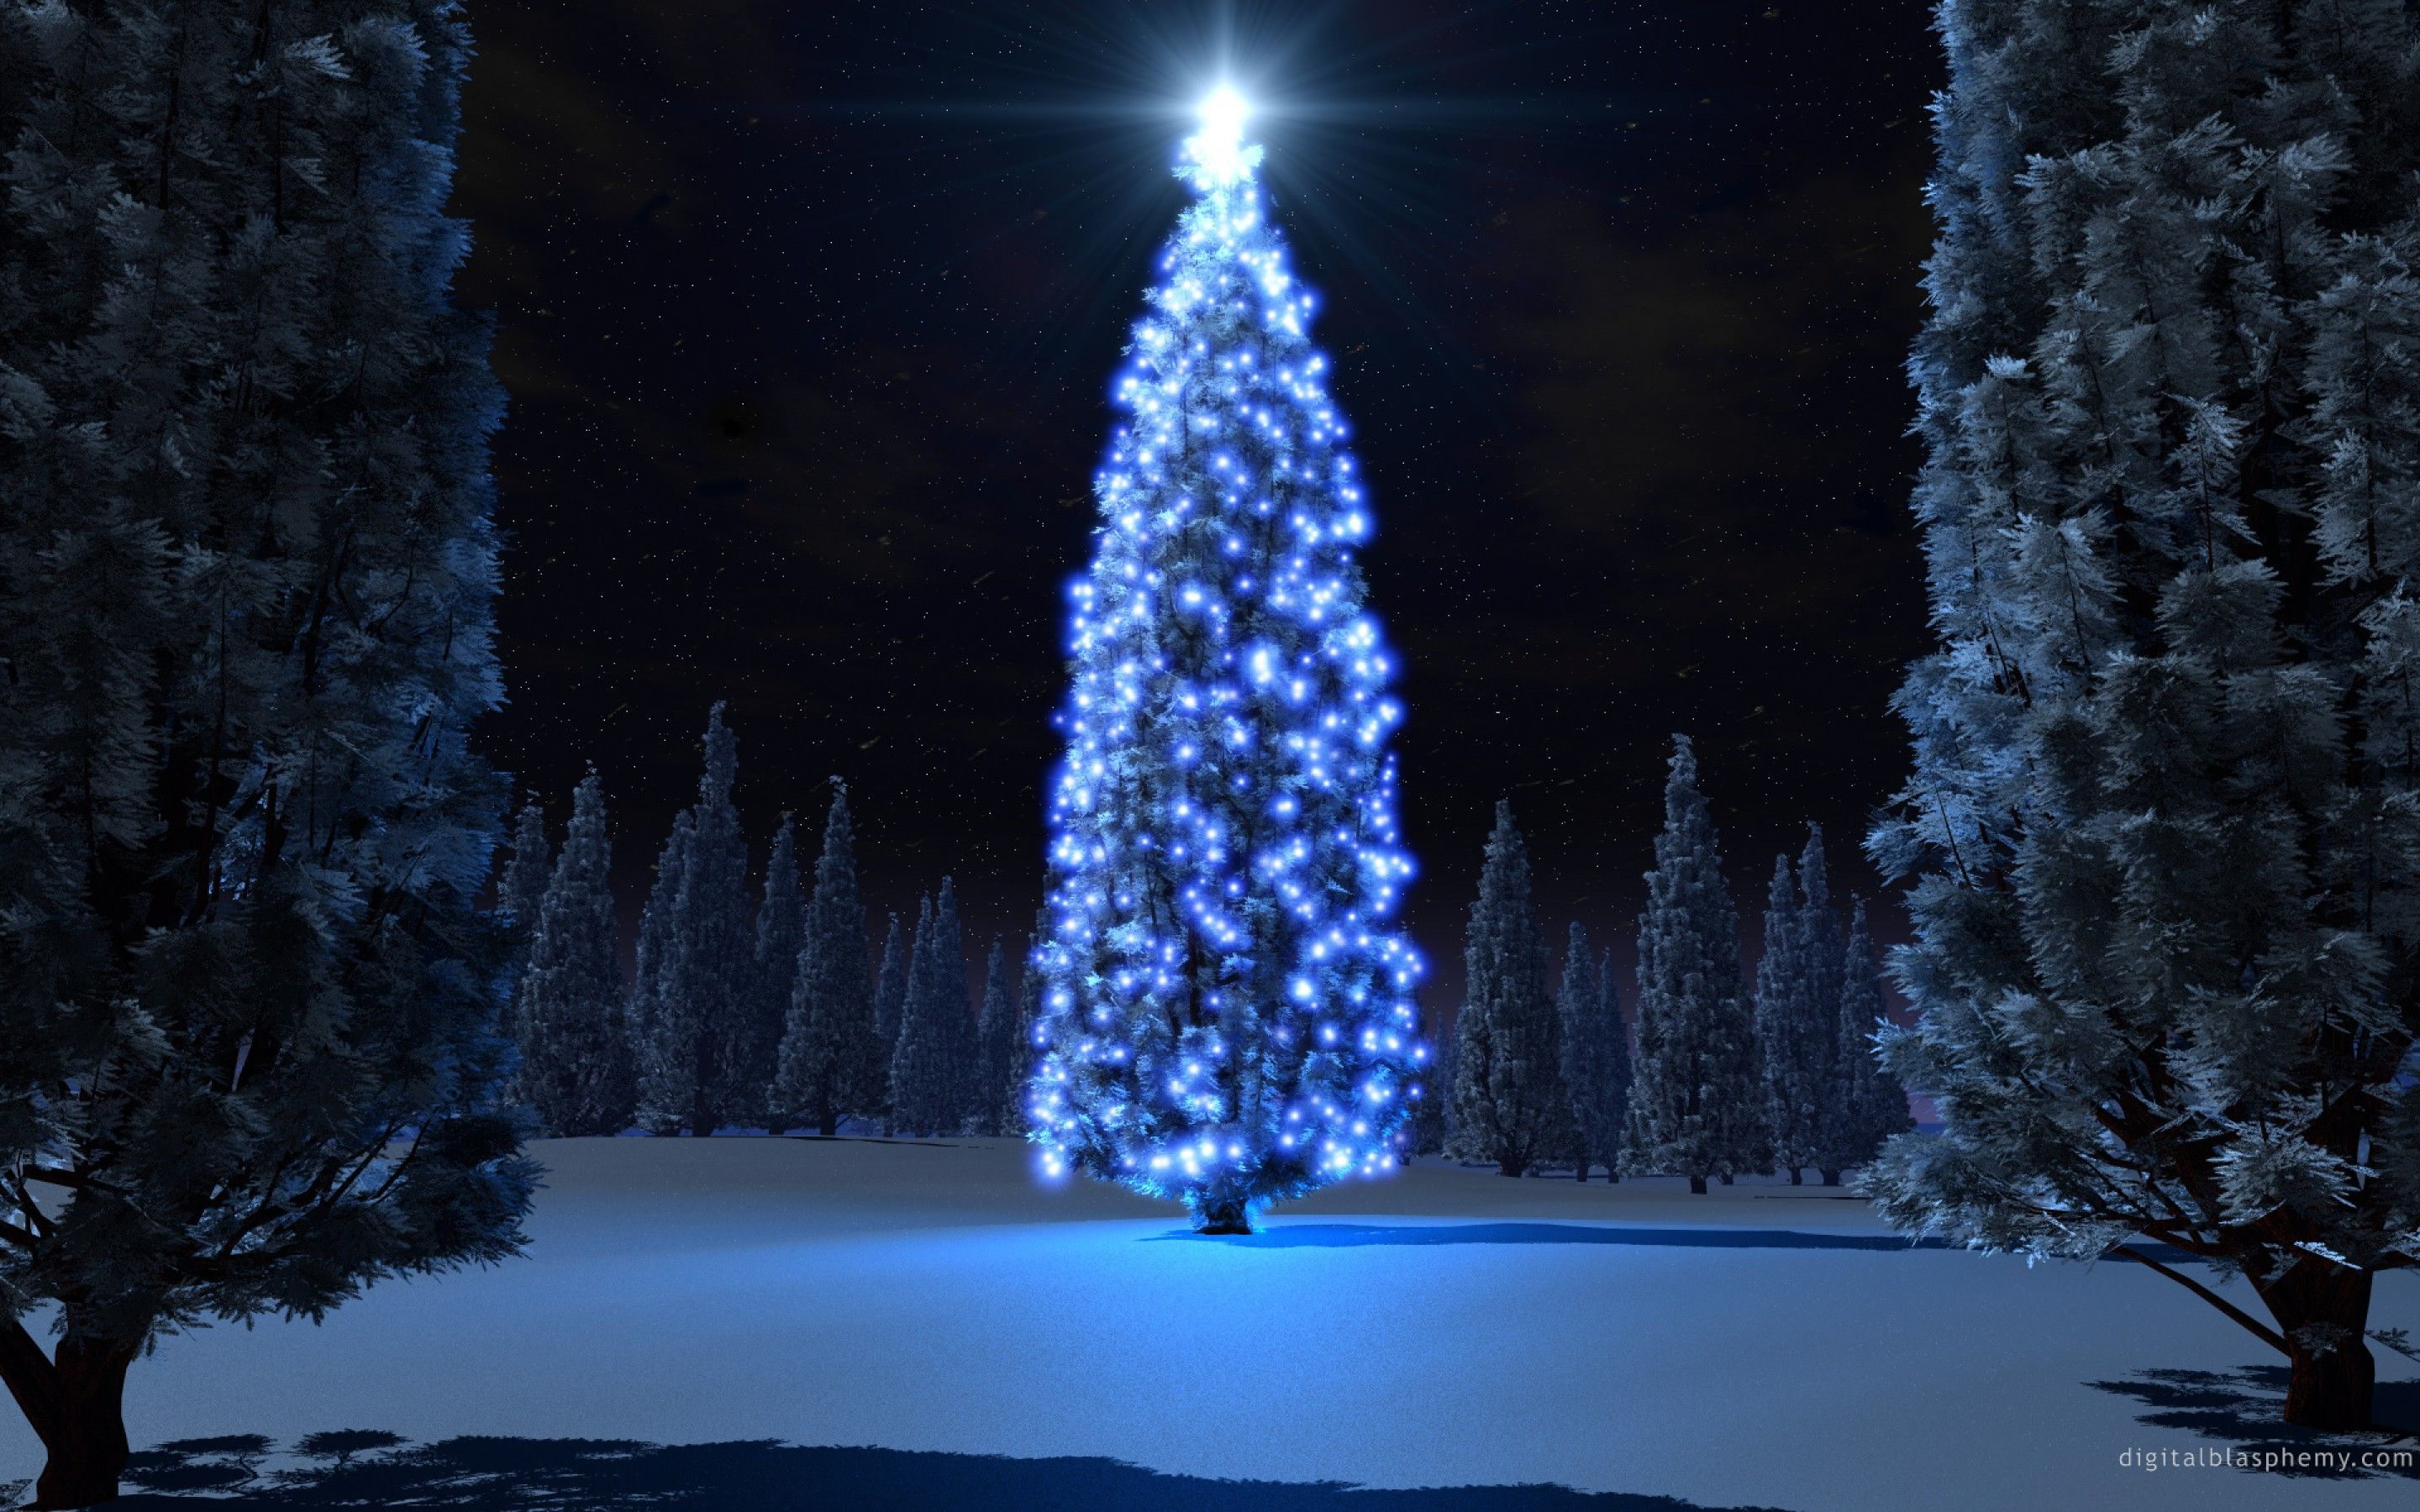 Beautiful Christmas Trees And Starlight Photo Gallery Hd Wallpaper Widescreen Christmas Desktop Wallpaper Christmas Wallpaper Free Christmas Desktop